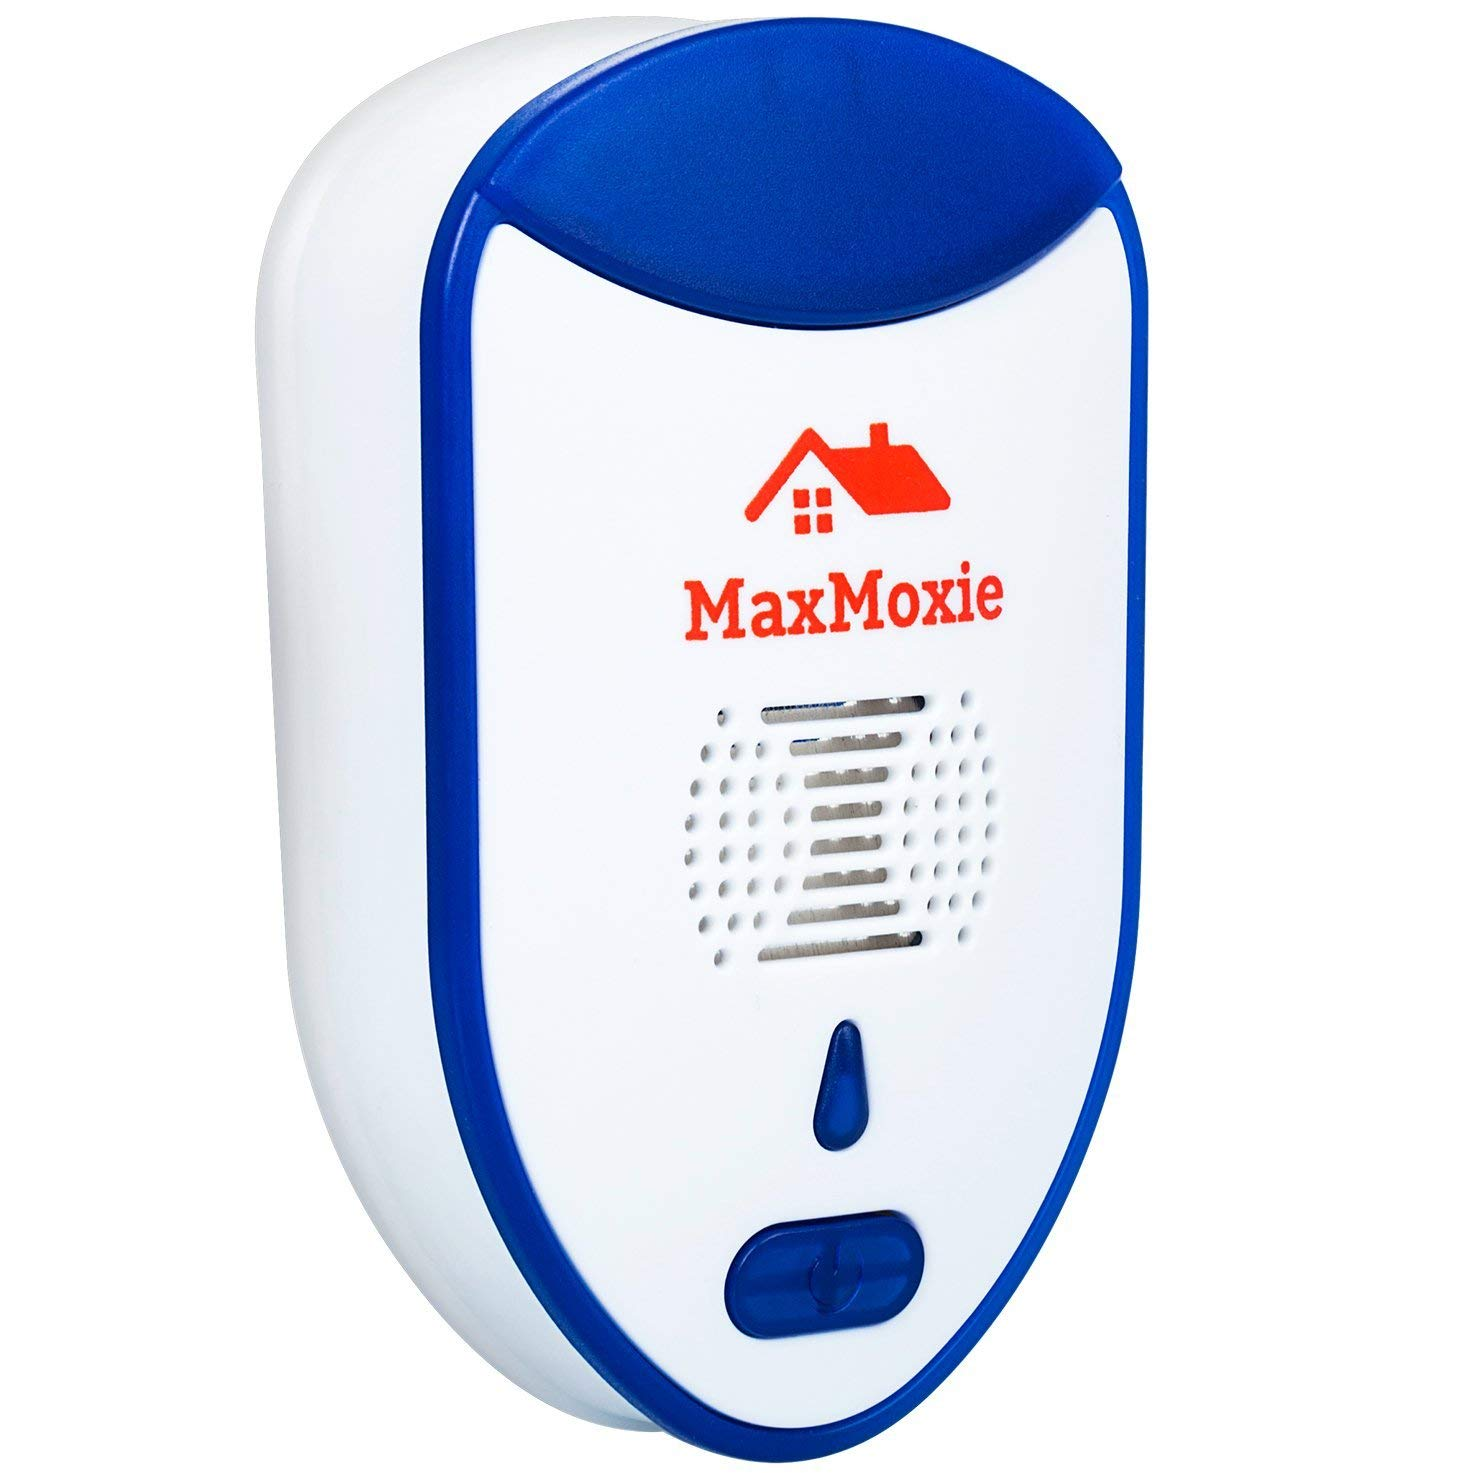 MaxMoxie Ultrasonic Indoor & Outdoor Pest Deterrent